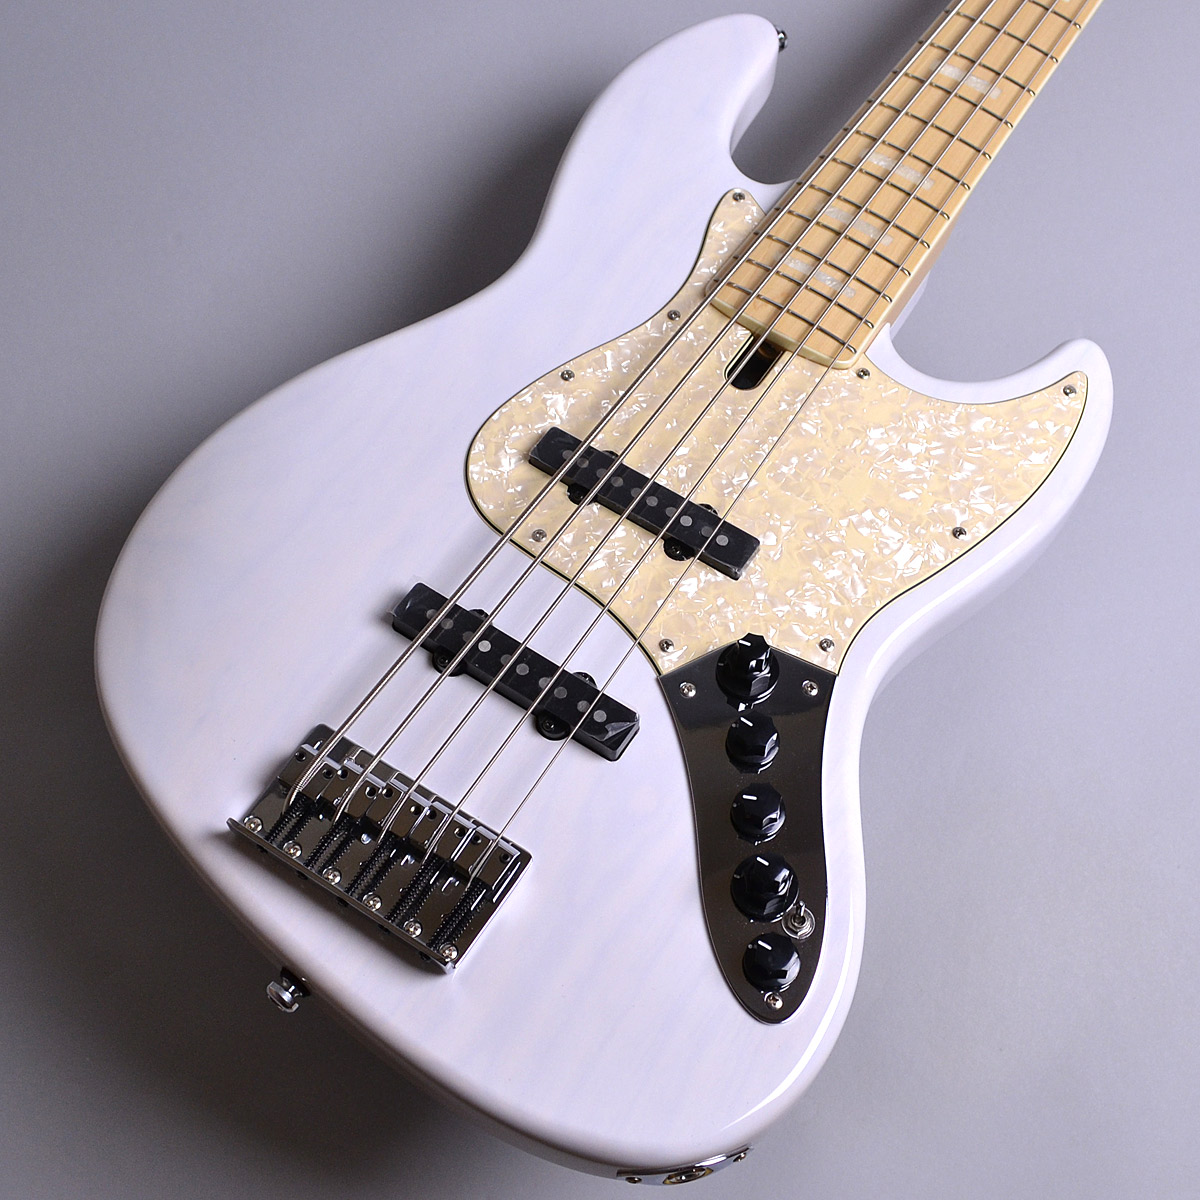 Sire Marcus Miller V7 5ST Swamp Ash / White Blond ジャズベースタイプ 【サイアー】【アクティブ5弦】